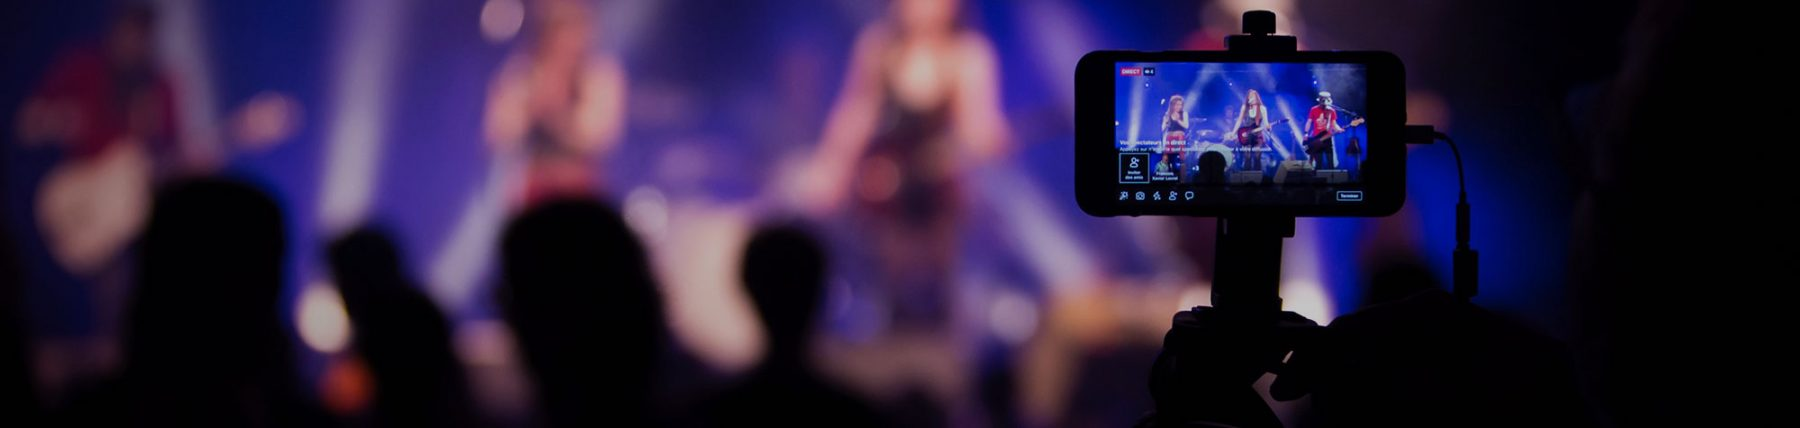 Why Live Video is So Powerful